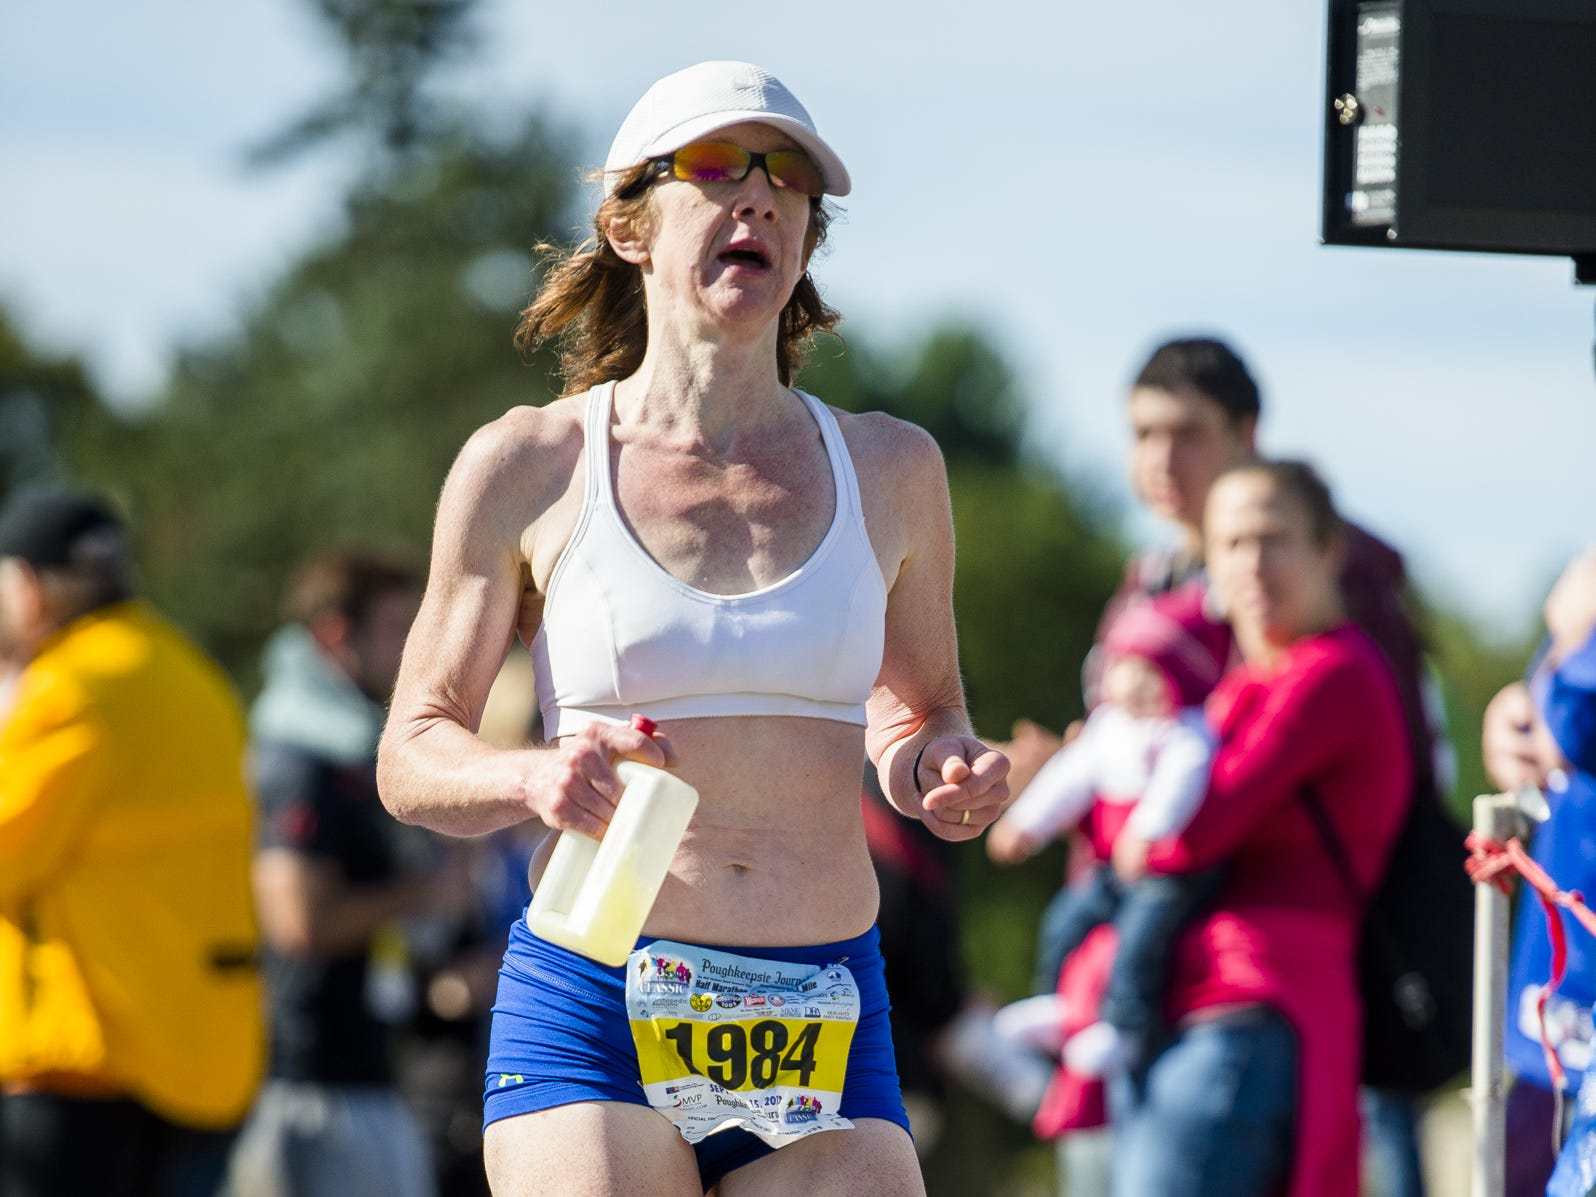 Connie Seigh of Pleasant Valley crosses the finish line after winning the women's half-marathon race during the Dutchess County Classic on Sept. 15, 2013.